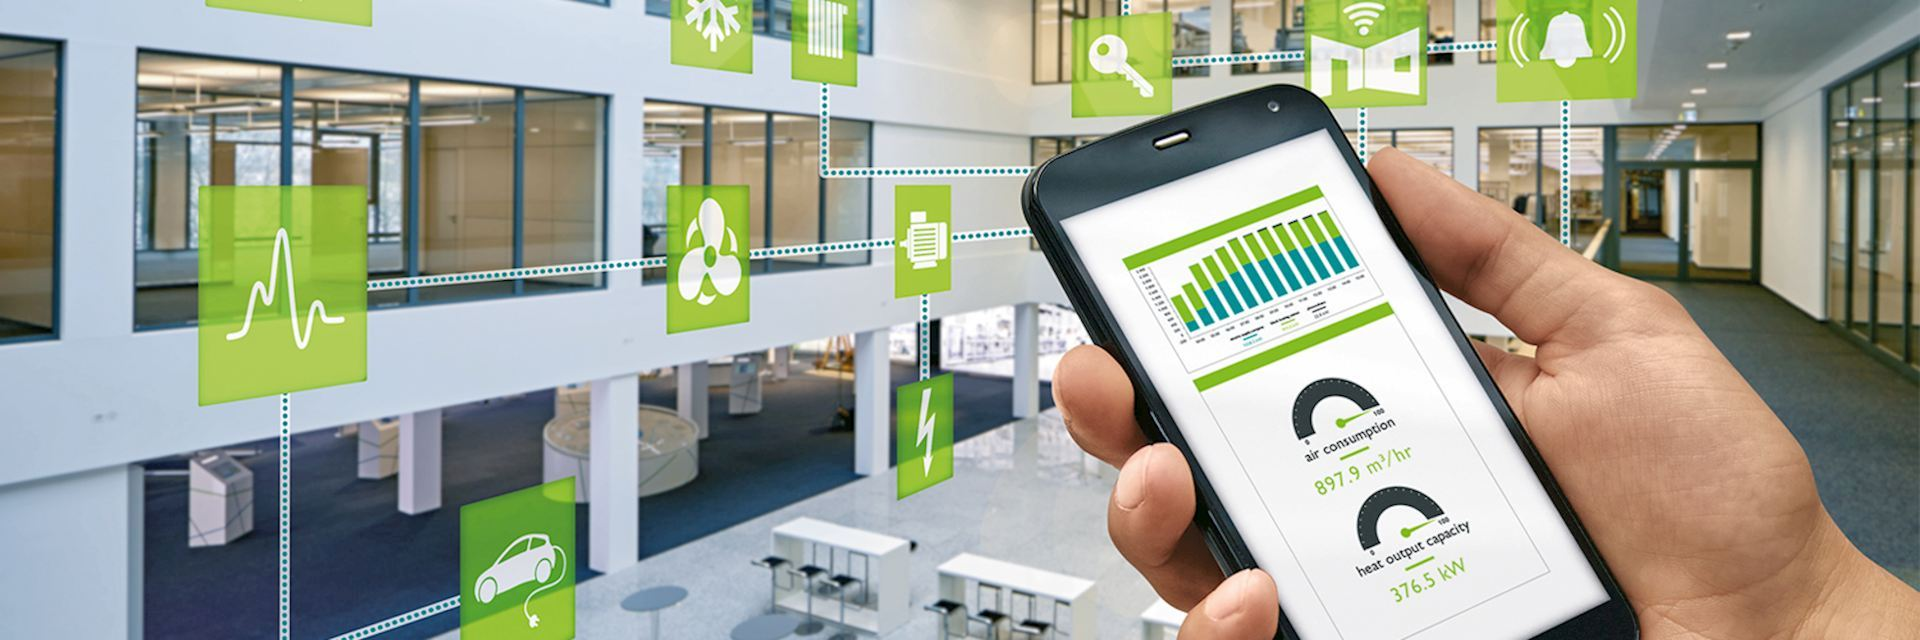 Industry 4.0 - rendre chaque application la plus intelligente possible